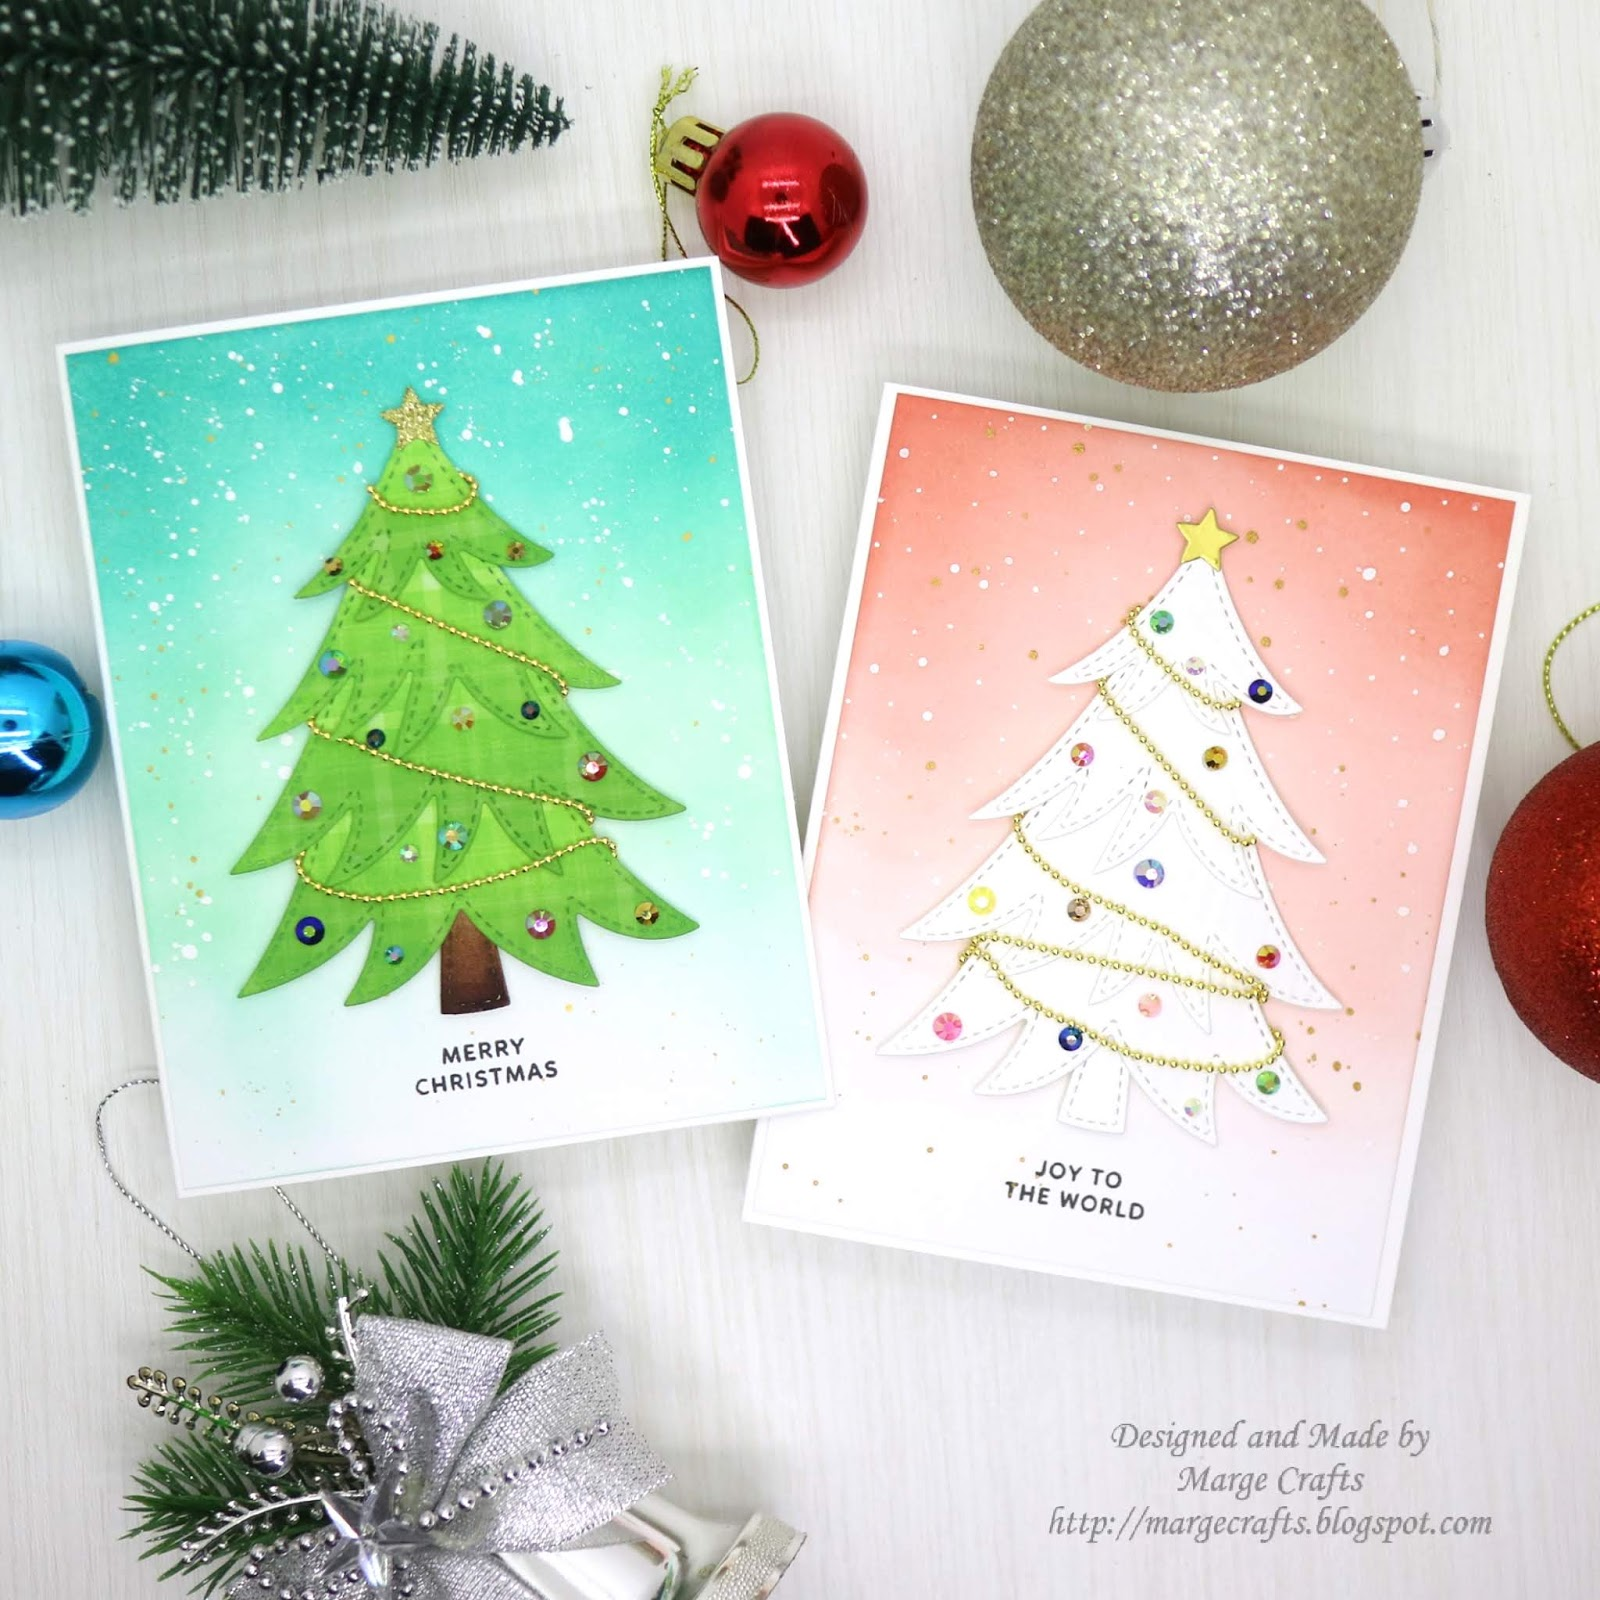 Marge Crafts: Simple Christmas Cards ideas with ink blending